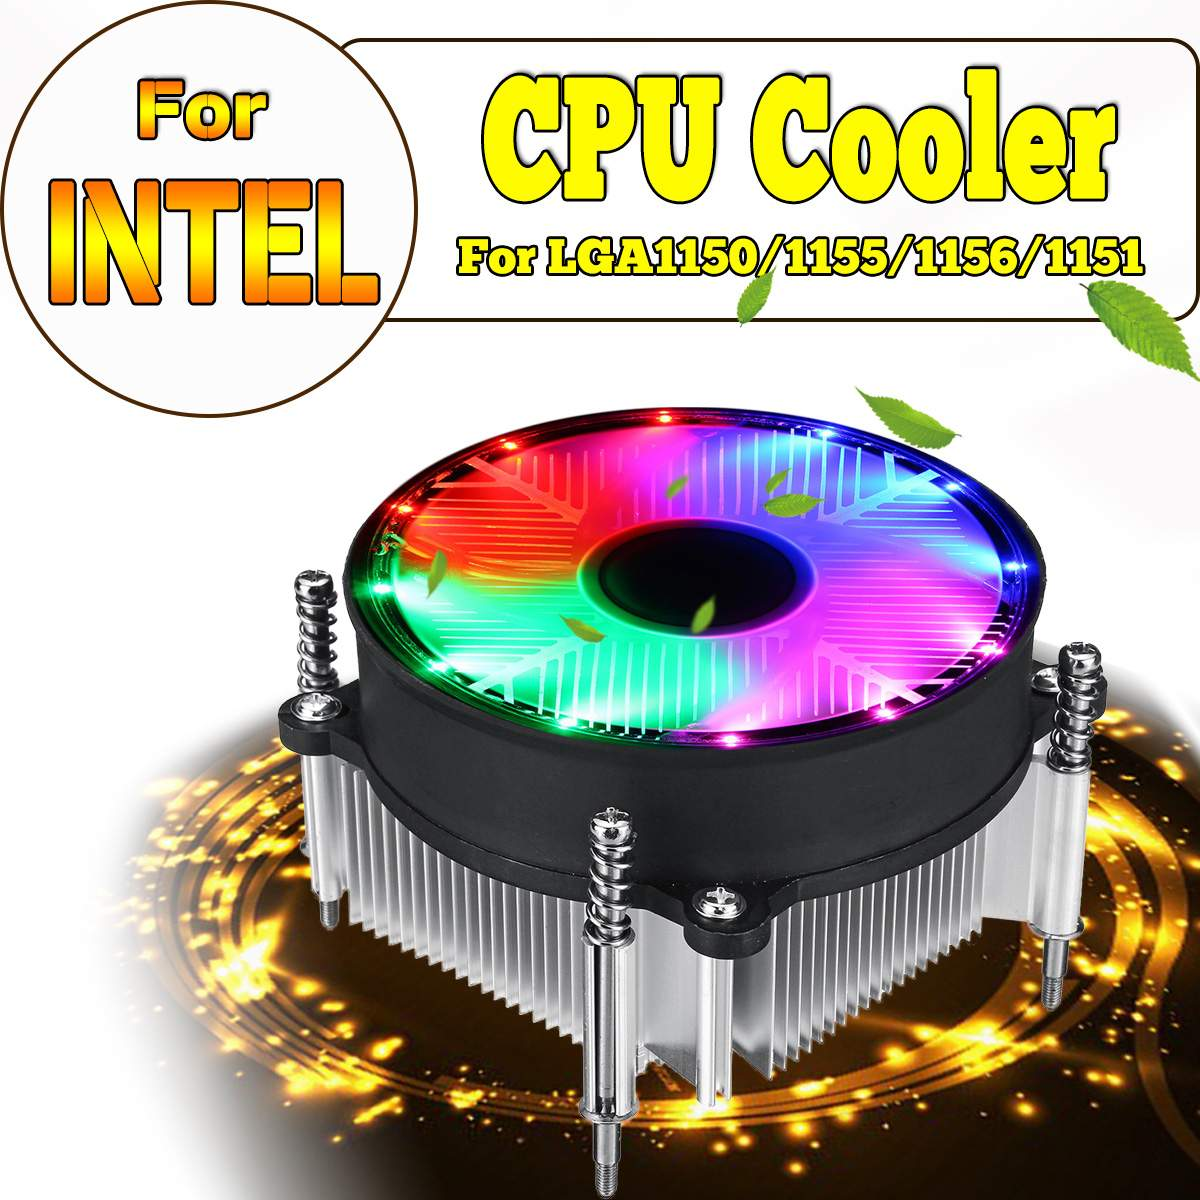 LED CPU Cooler Cooling Fan For Intel LED Silence RGB Fan Radiator Heatsink Cooler Support For Intel 115X 1150 1155 1156 1151